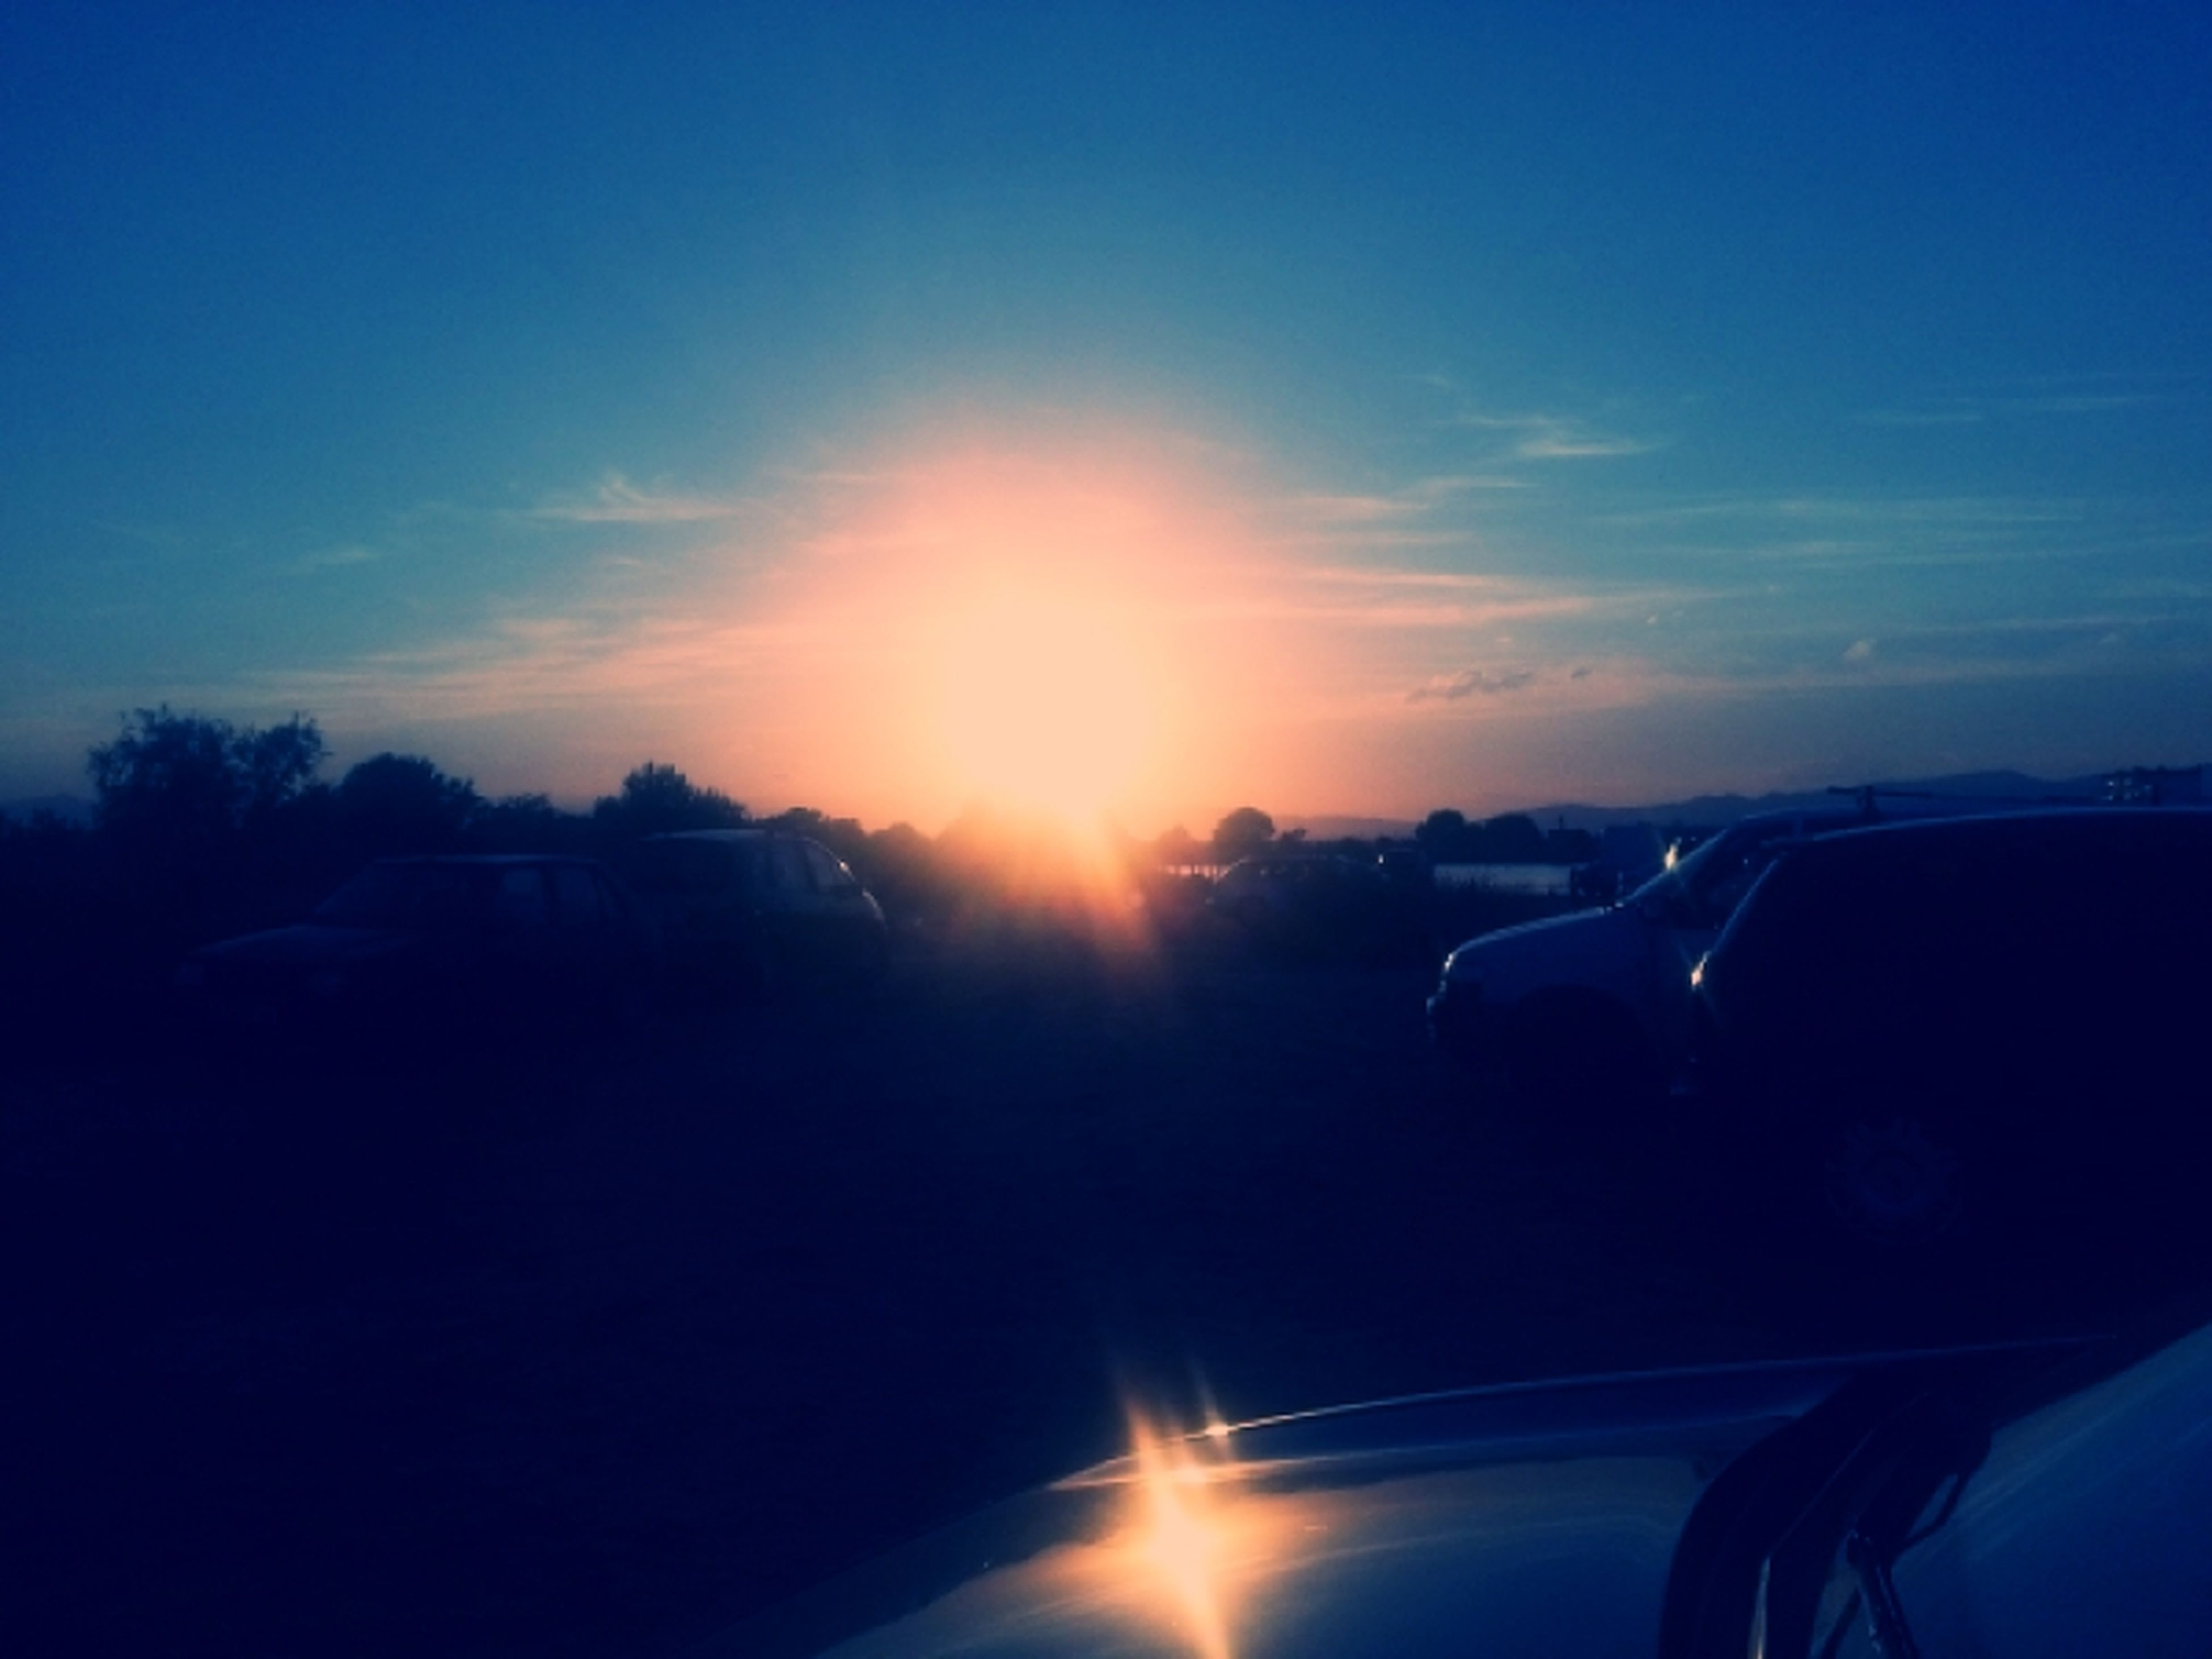 sun, transportation, sunbeam, sunlight, lens flare, mode of transport, car, sunset, land vehicle, sky, vehicle interior, silhouette, part of, travel, nature, windshield, cropped, blue, car interior, beauty in nature